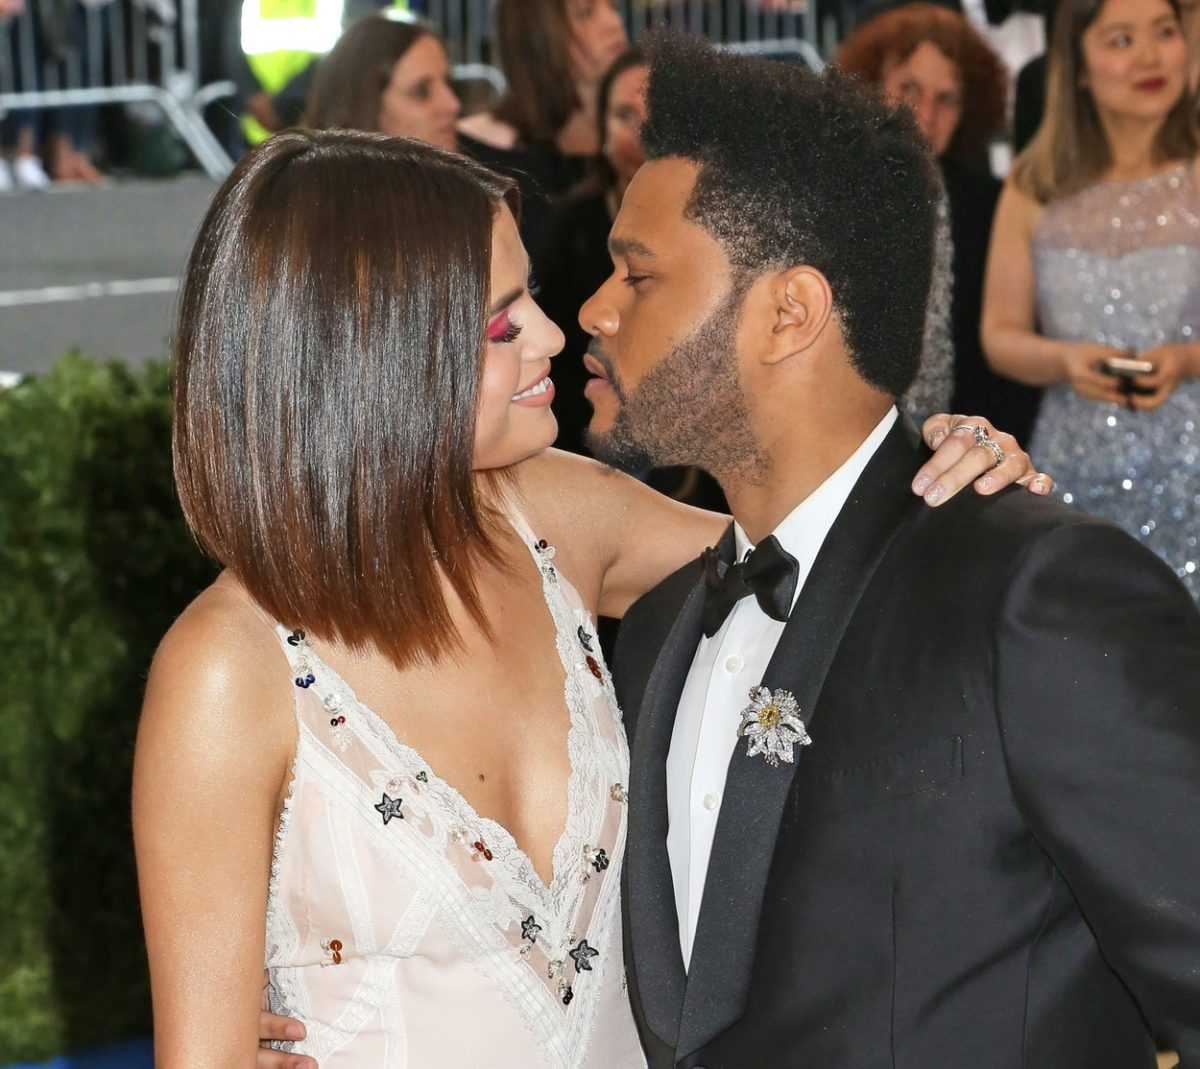 The Weeknd and Selena Gomez share the PDA at Met Gala